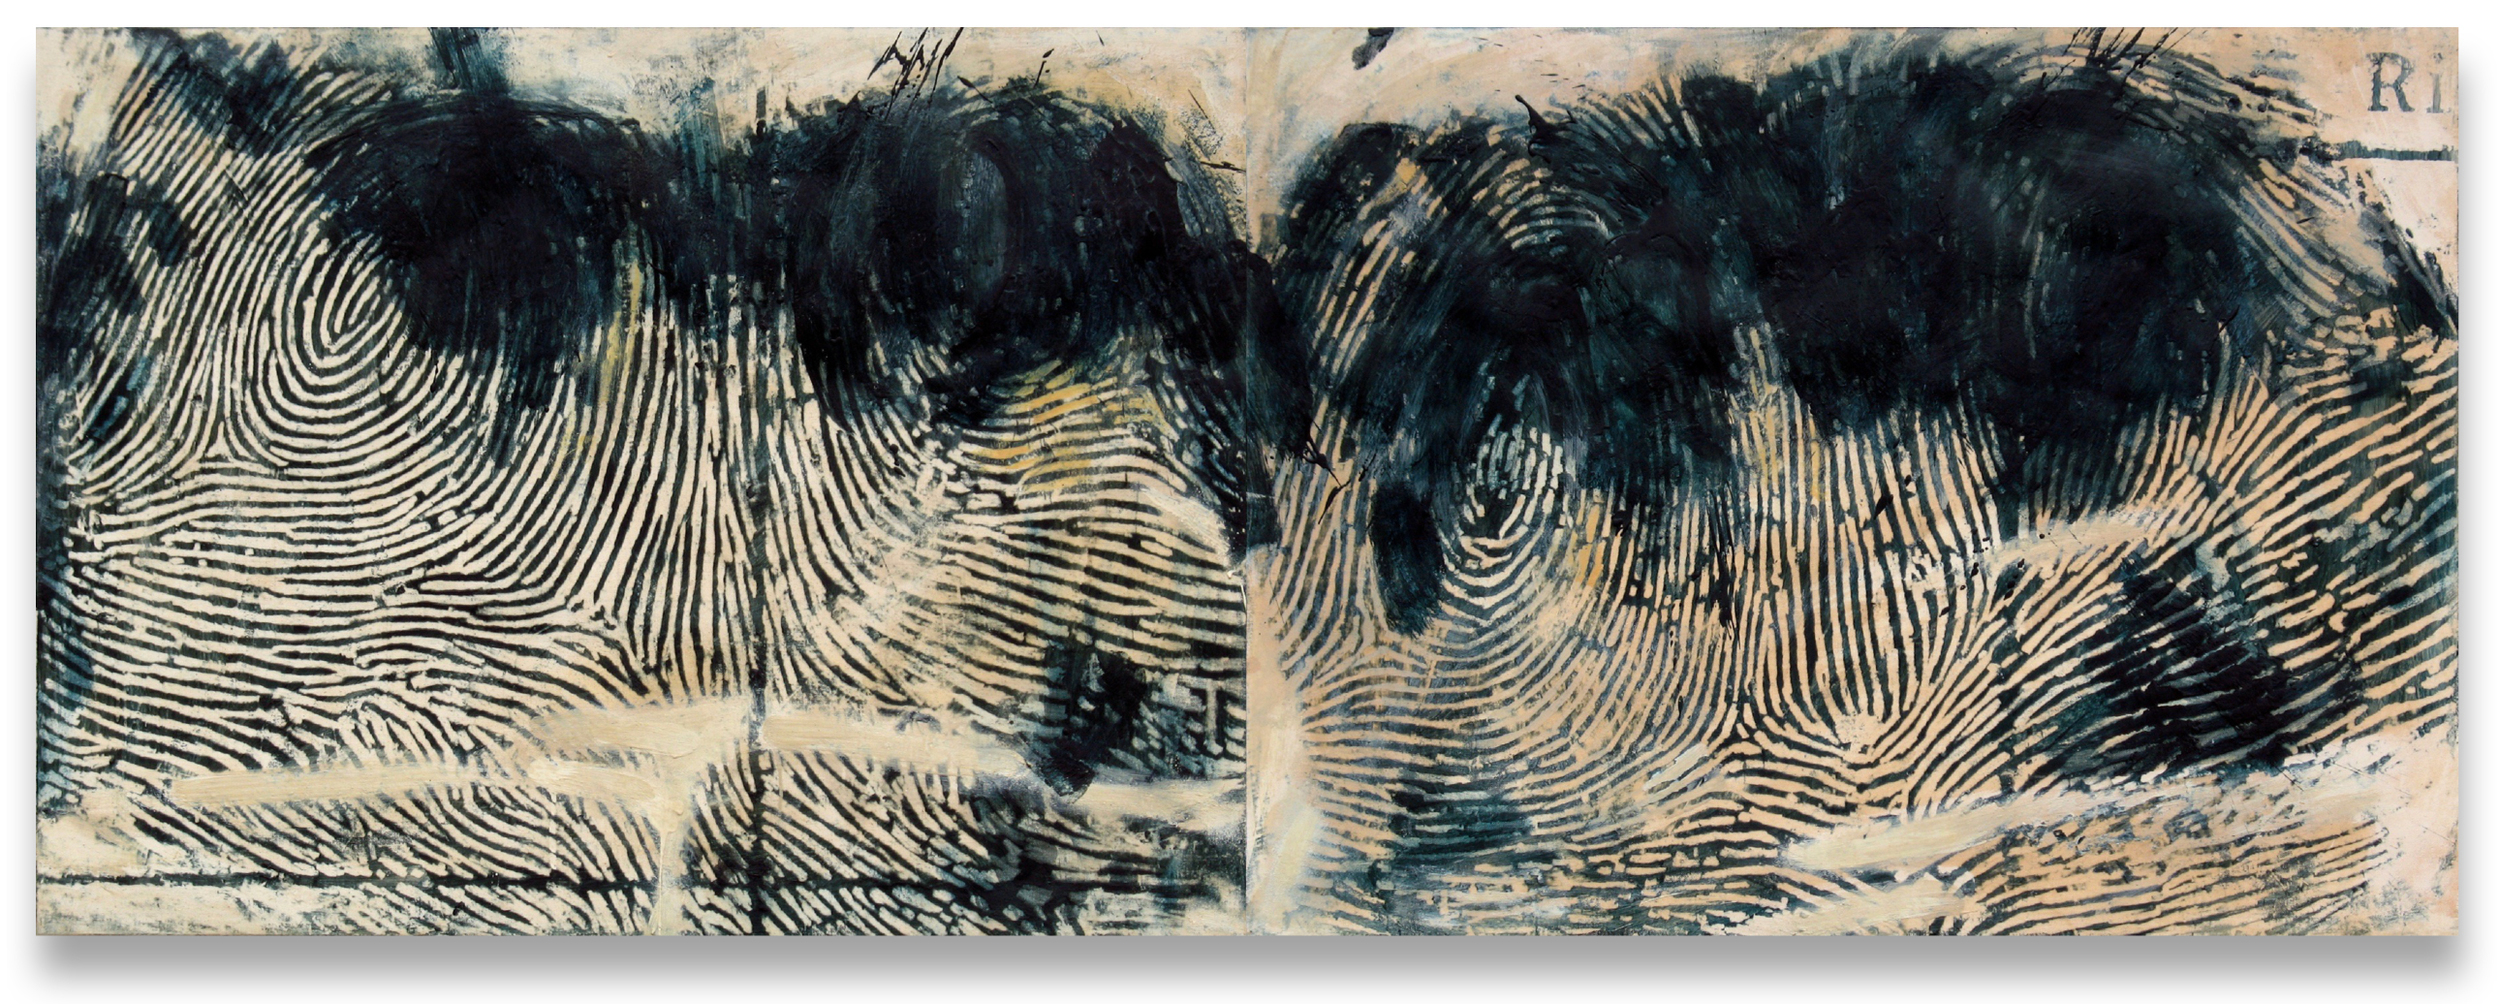 "Span, 2001. Encaustic on canvas, two panels, 36"" x 96""."